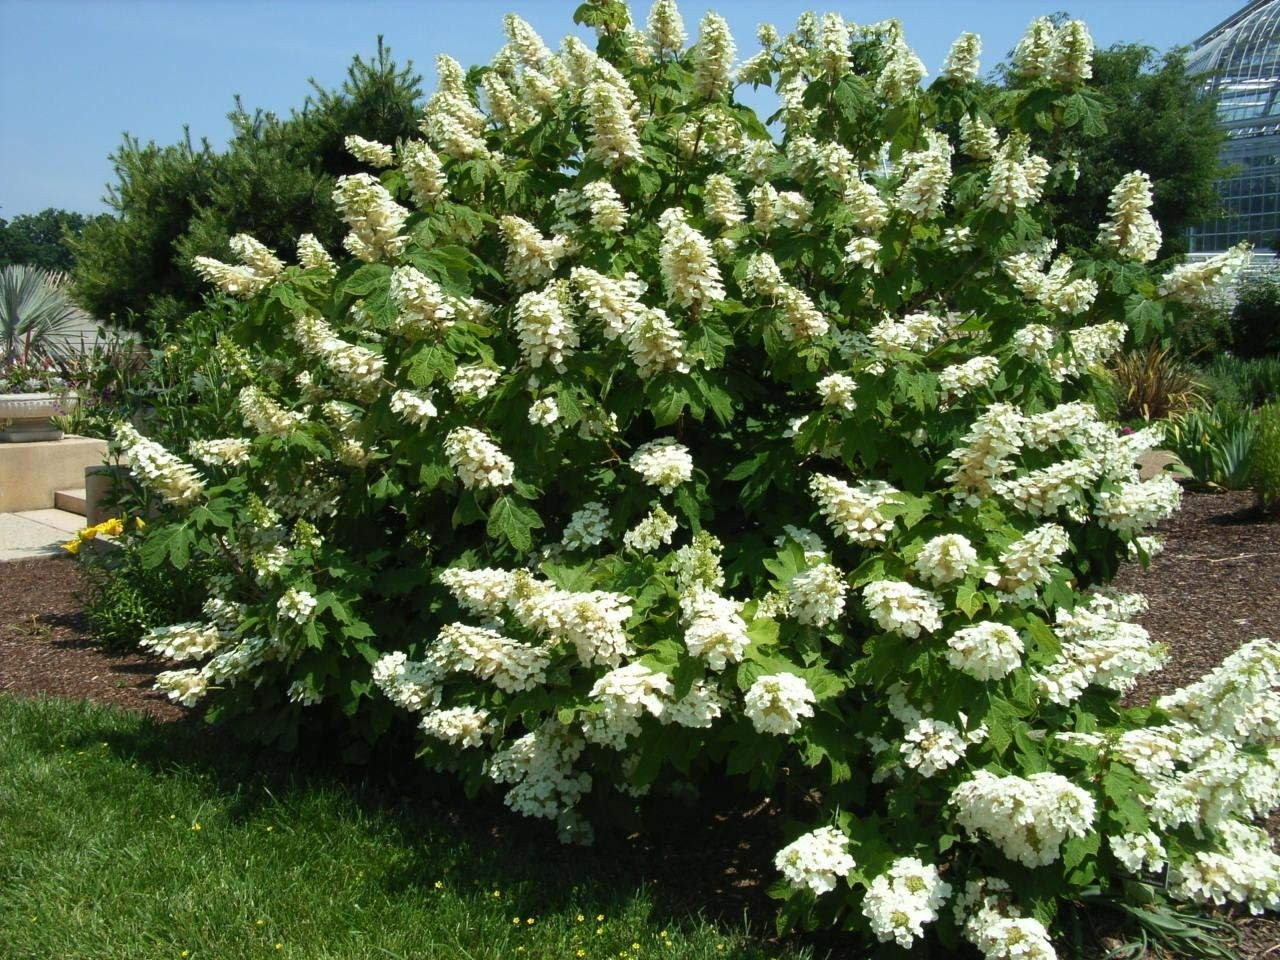 Alice Oakleaf Hydrangea - Live Plants Shipped Over 1 Foot Tall by DAS Farms (No California)